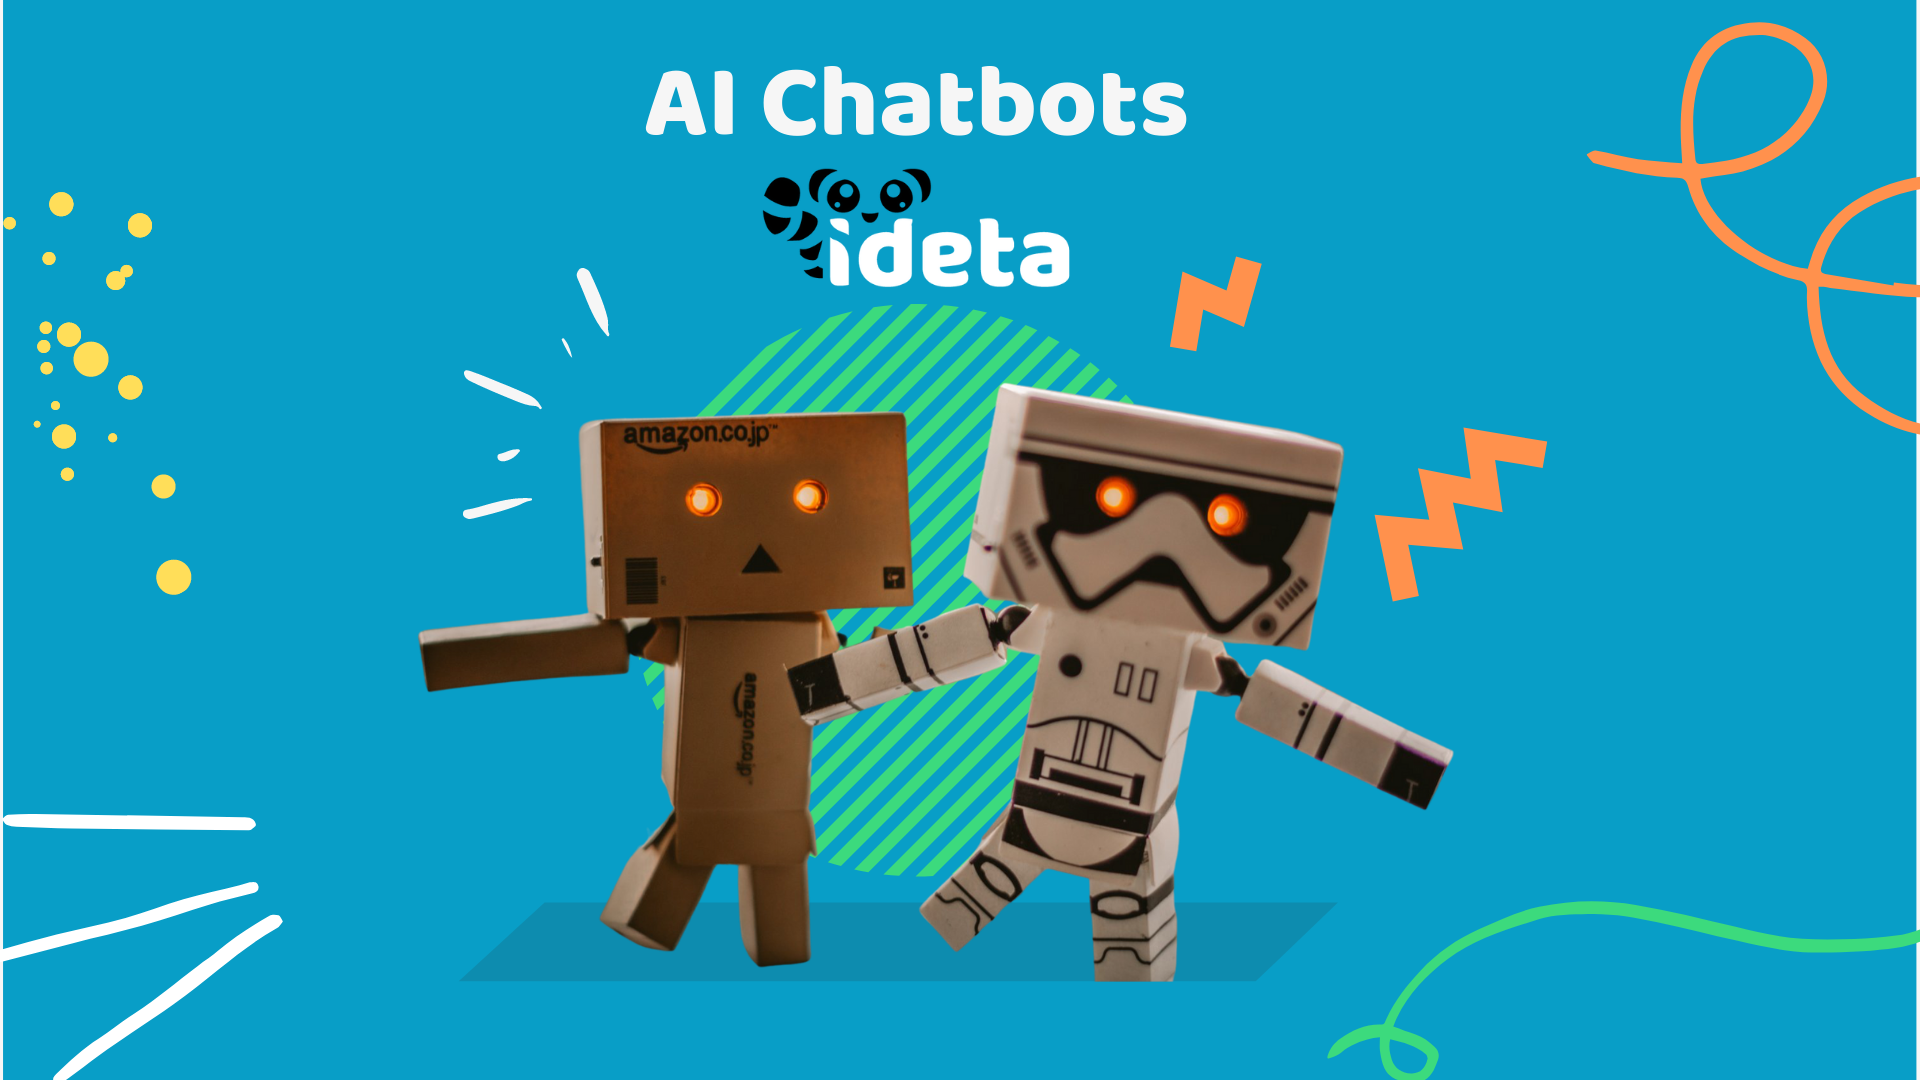 Uses of Artificial Intelligence in Chatbots